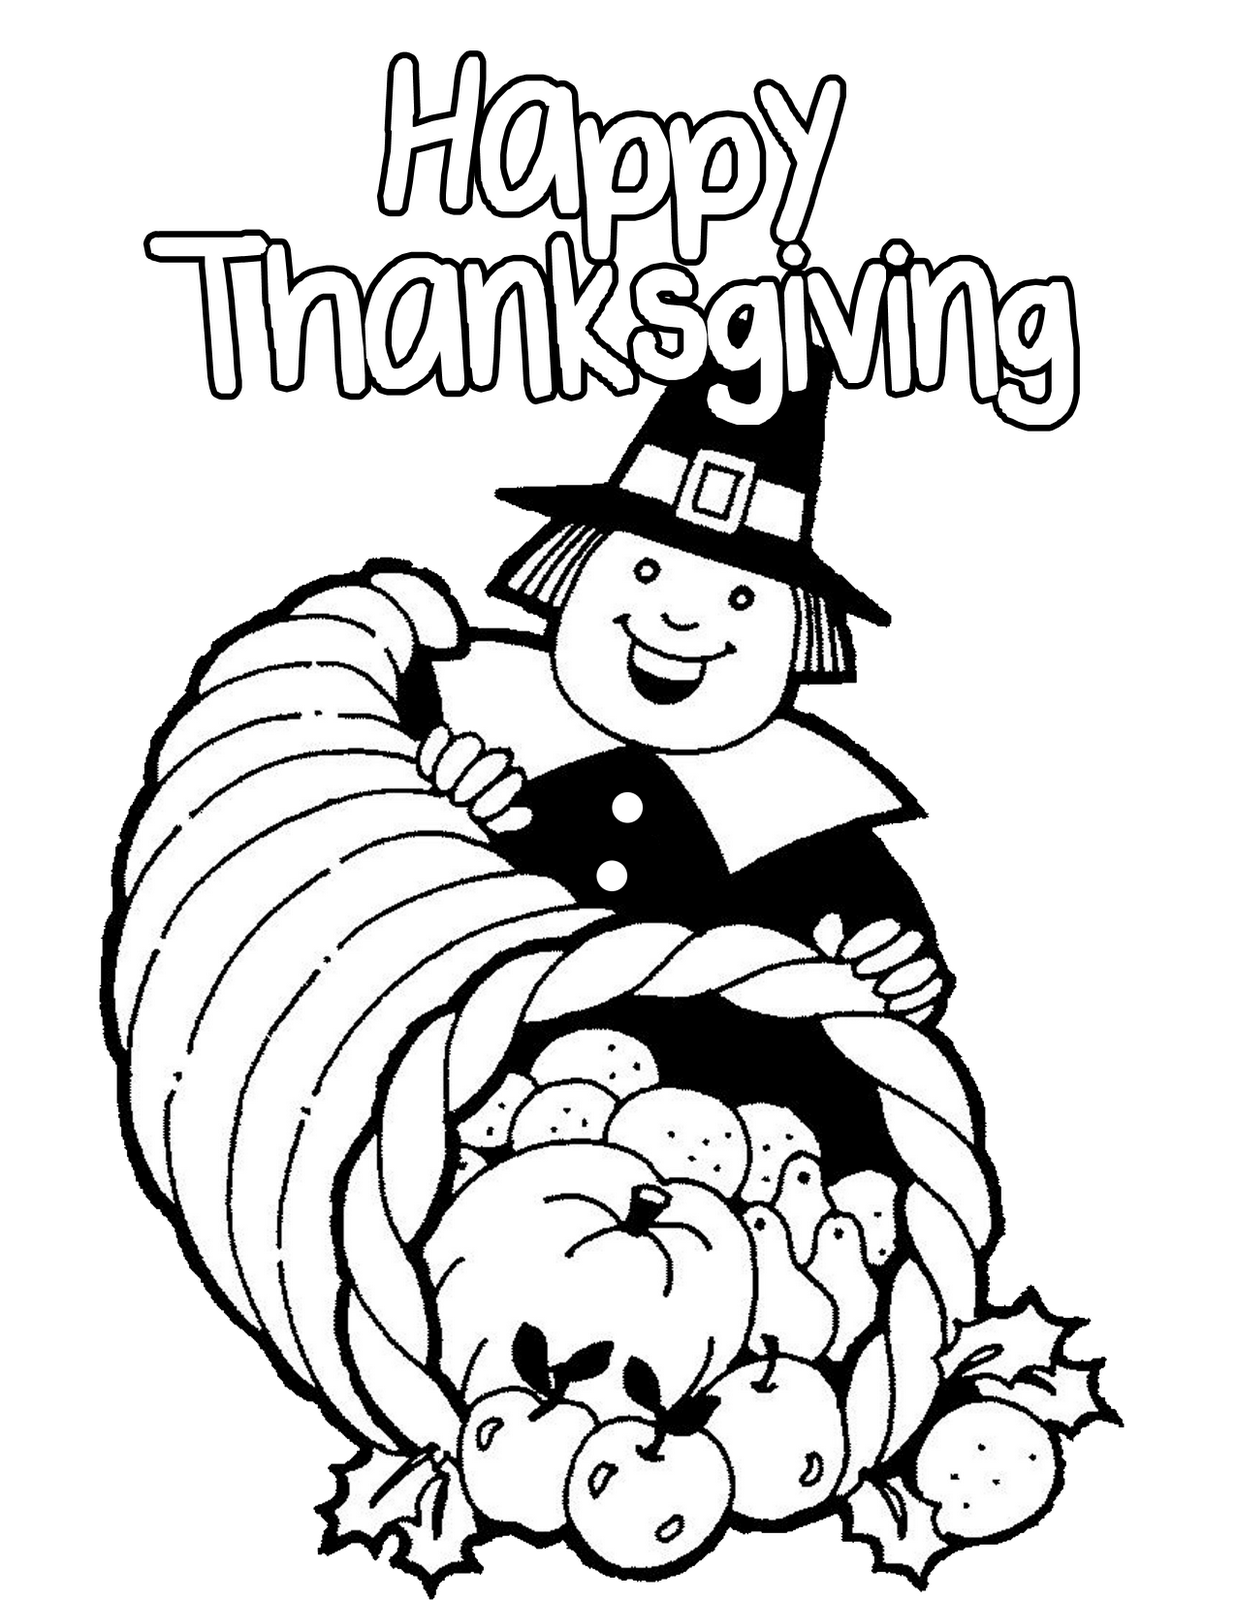 Disney coloring pages thanksgiving -  Printable Thanksgiving Coloring Pages Download